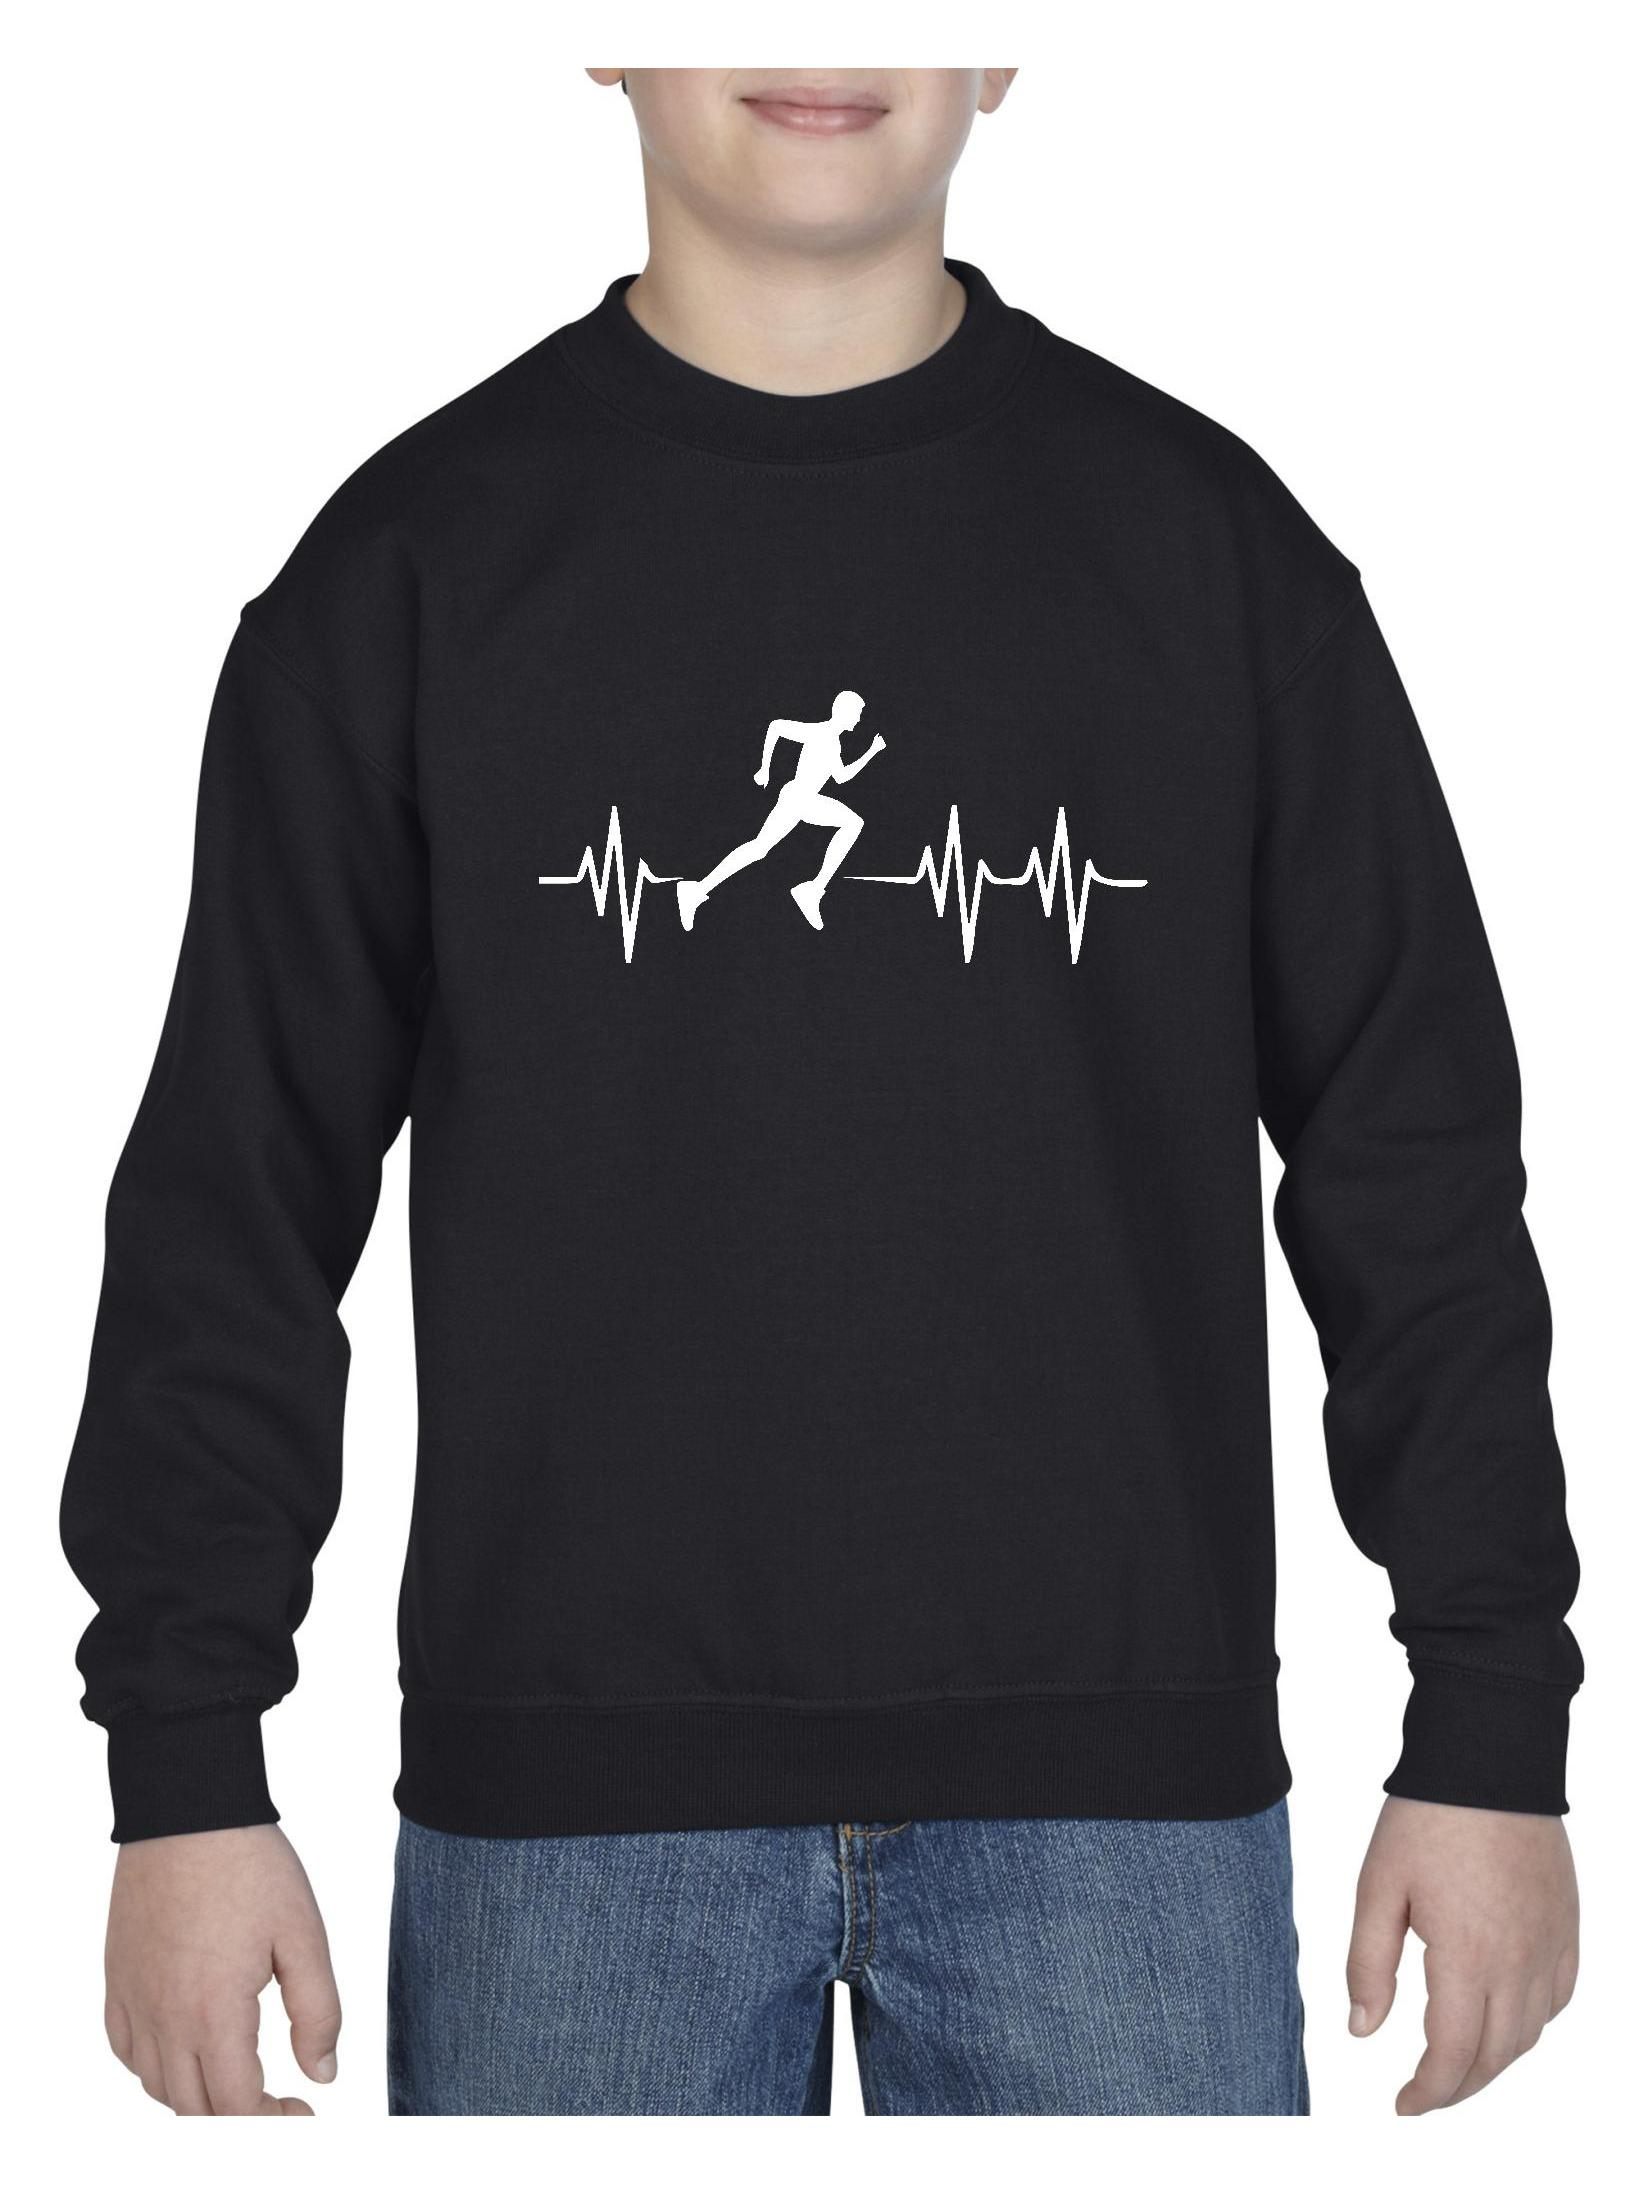 Running Unisex Youth Crewneck Sweatshirt